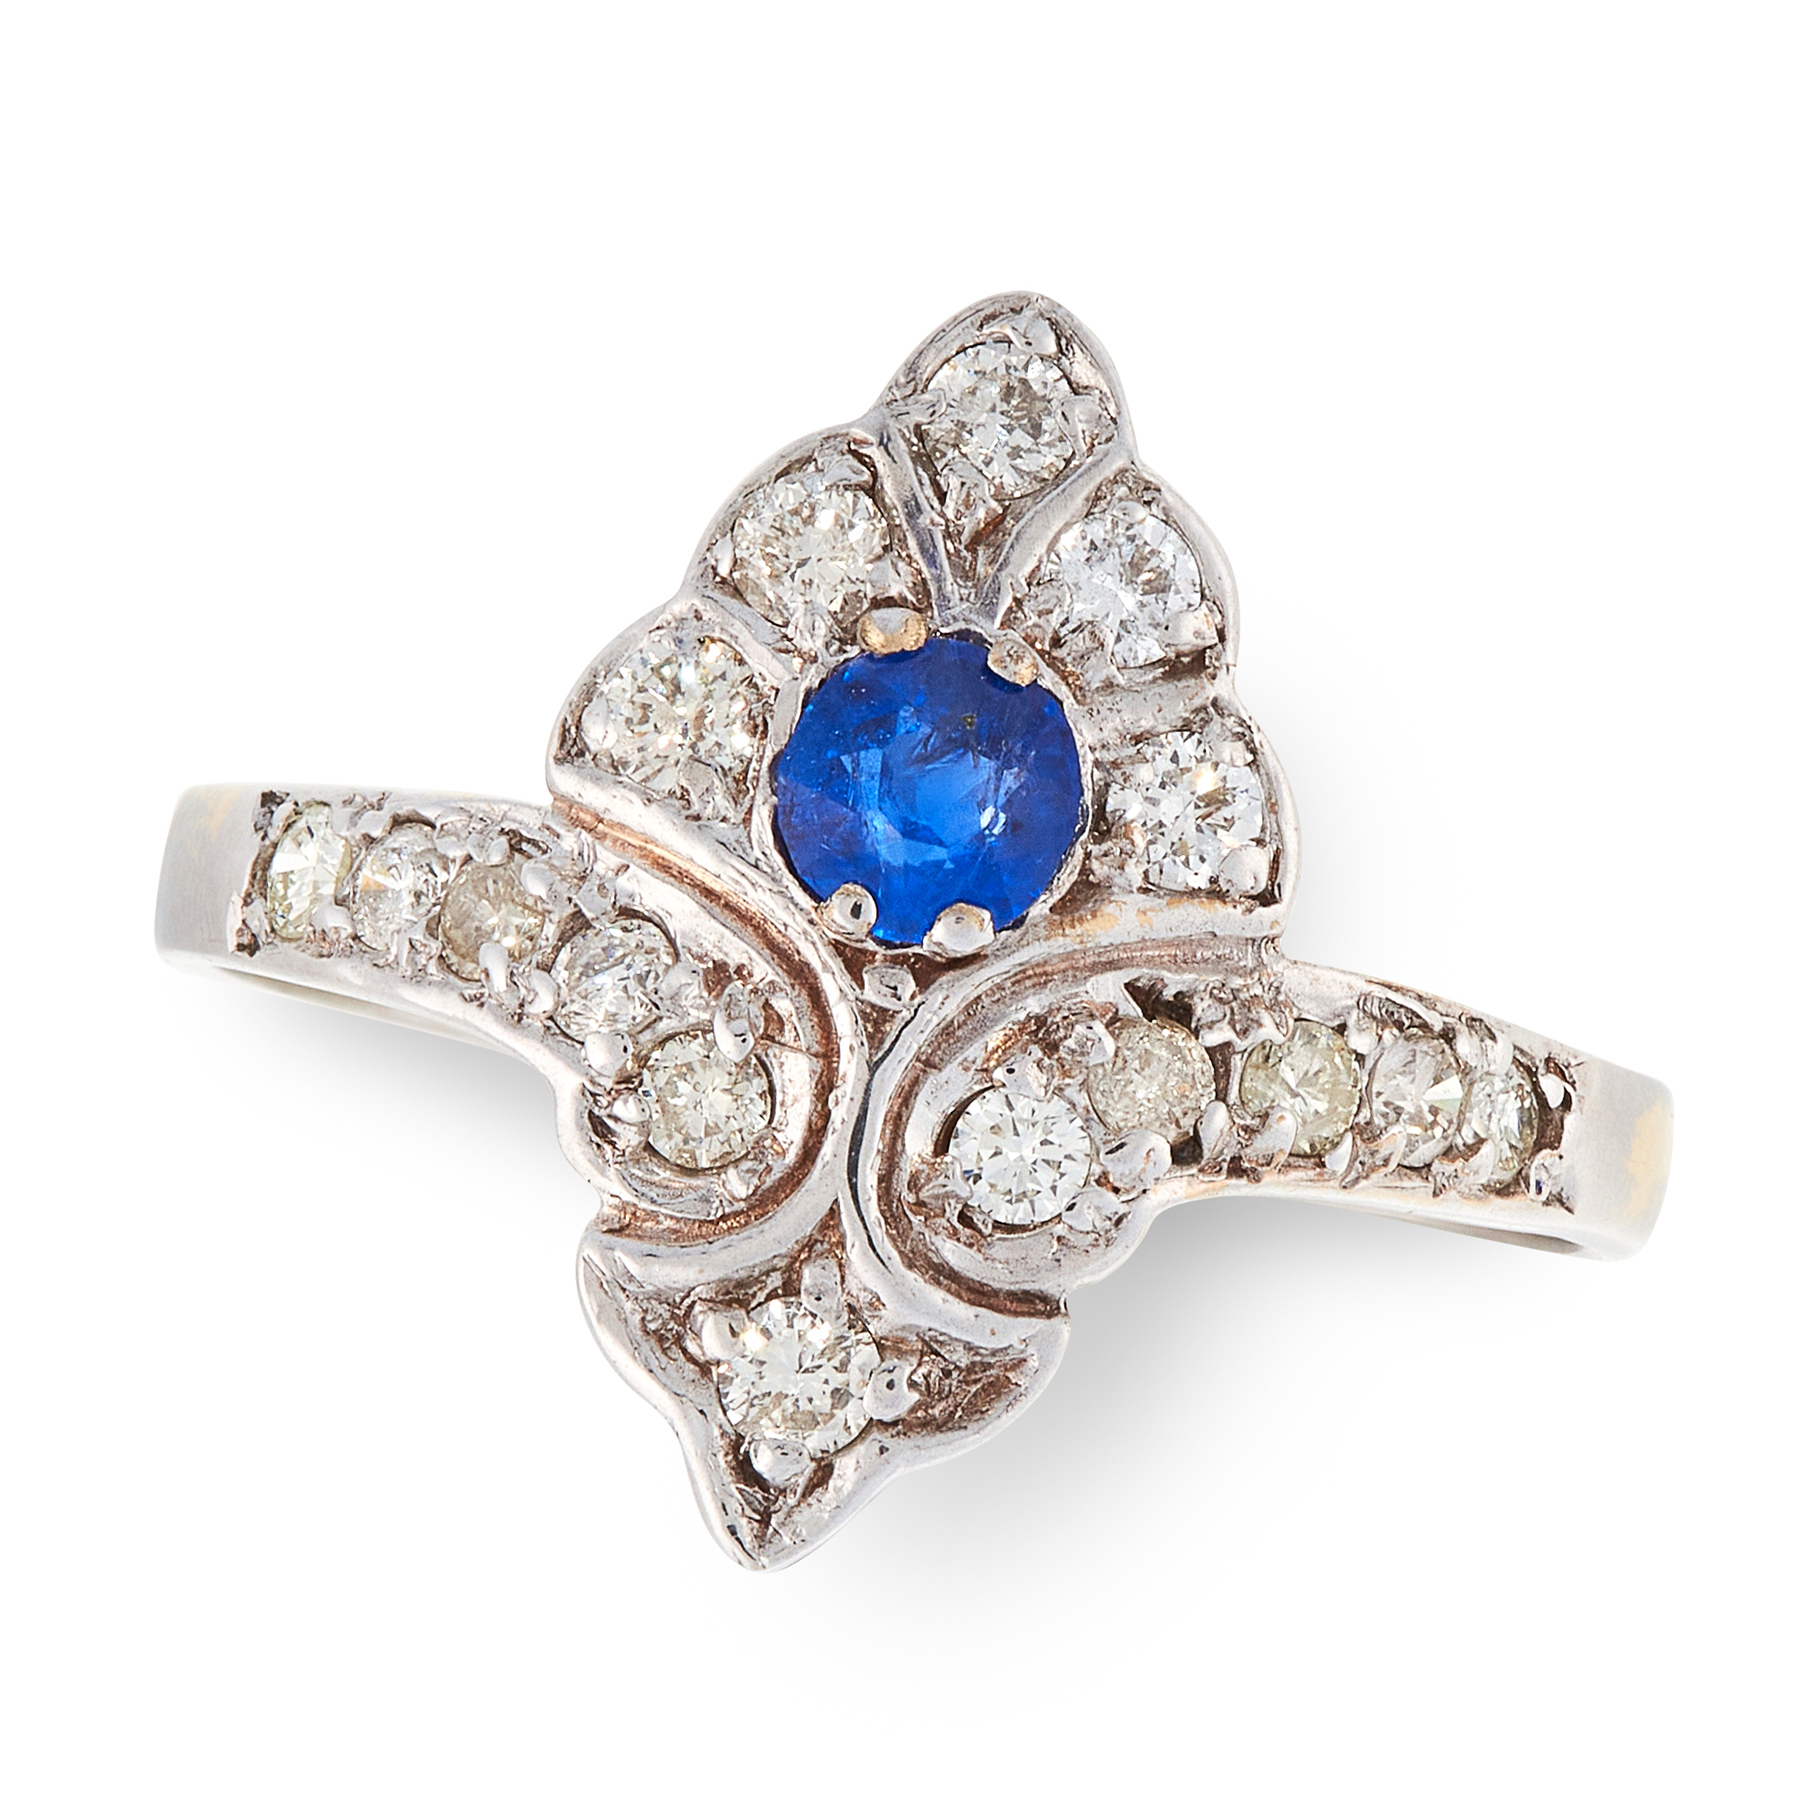 A SAPPHIRE AND DIAMOND DRESS RING the shield shaped face set with a round cut sapphire accented by